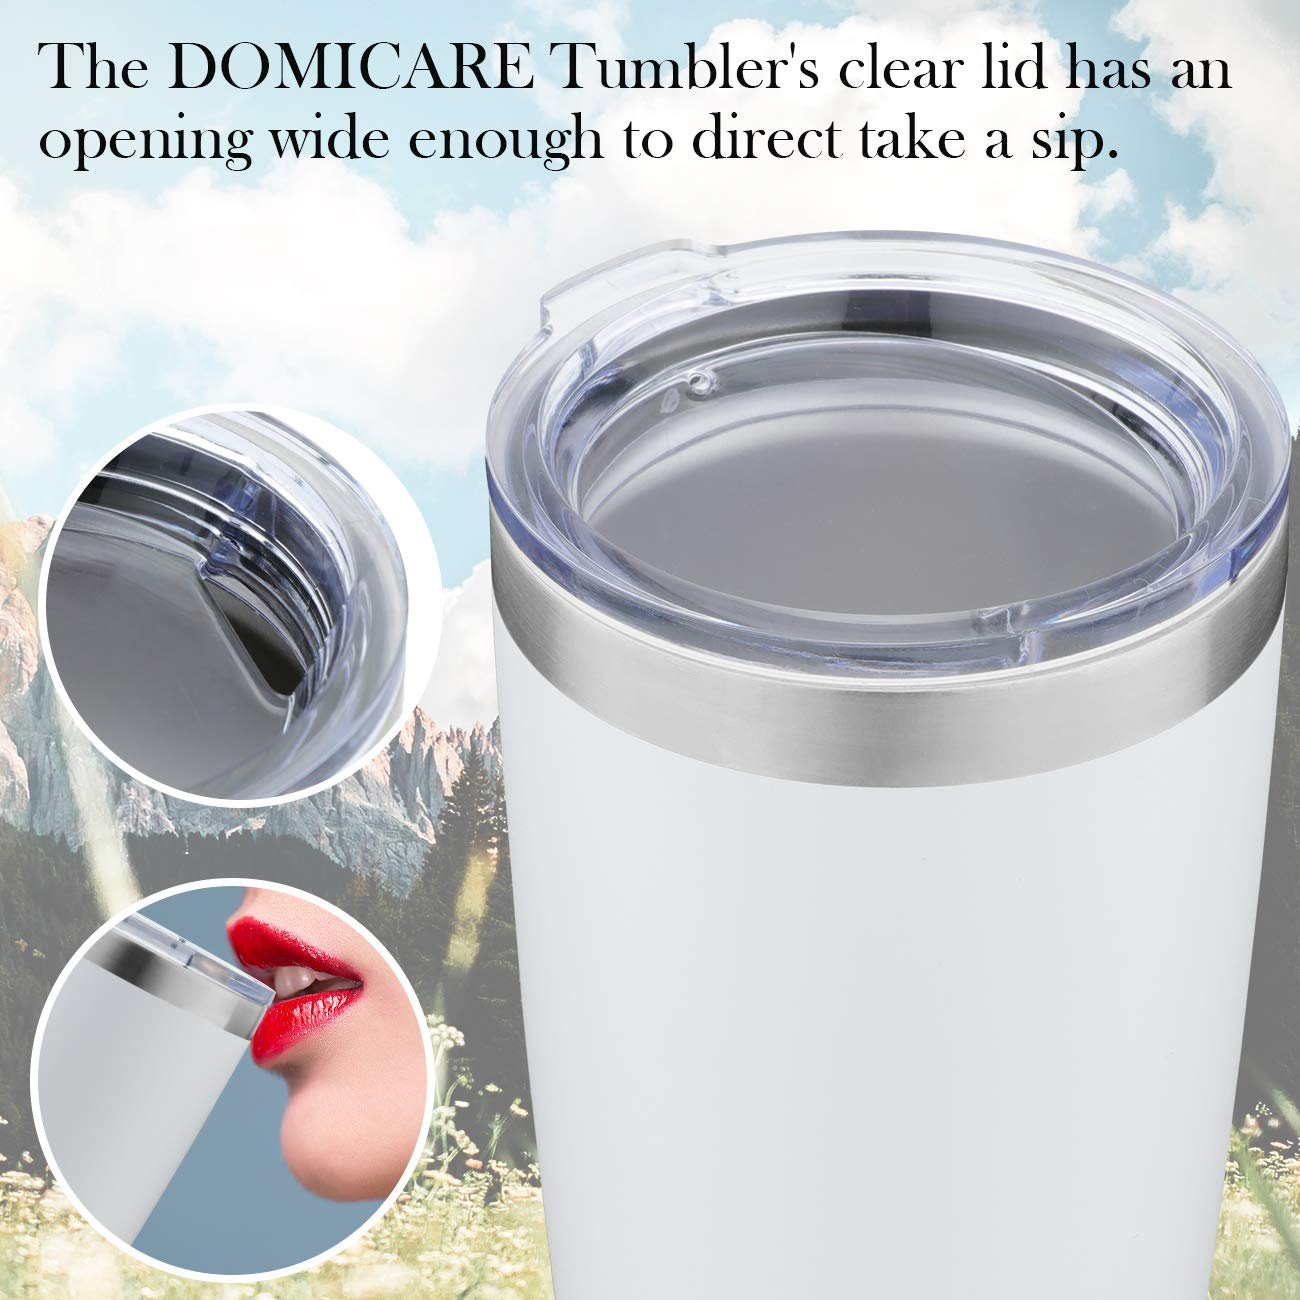 DOMICARE 20oz Stainless Steel Tumbler with Lid, Double Wall Vacuum Insulated Travel Mug, Durable Powder Coated Insulated Coffee Cup, 4 Pack, White by DOMICARE (Image #6)